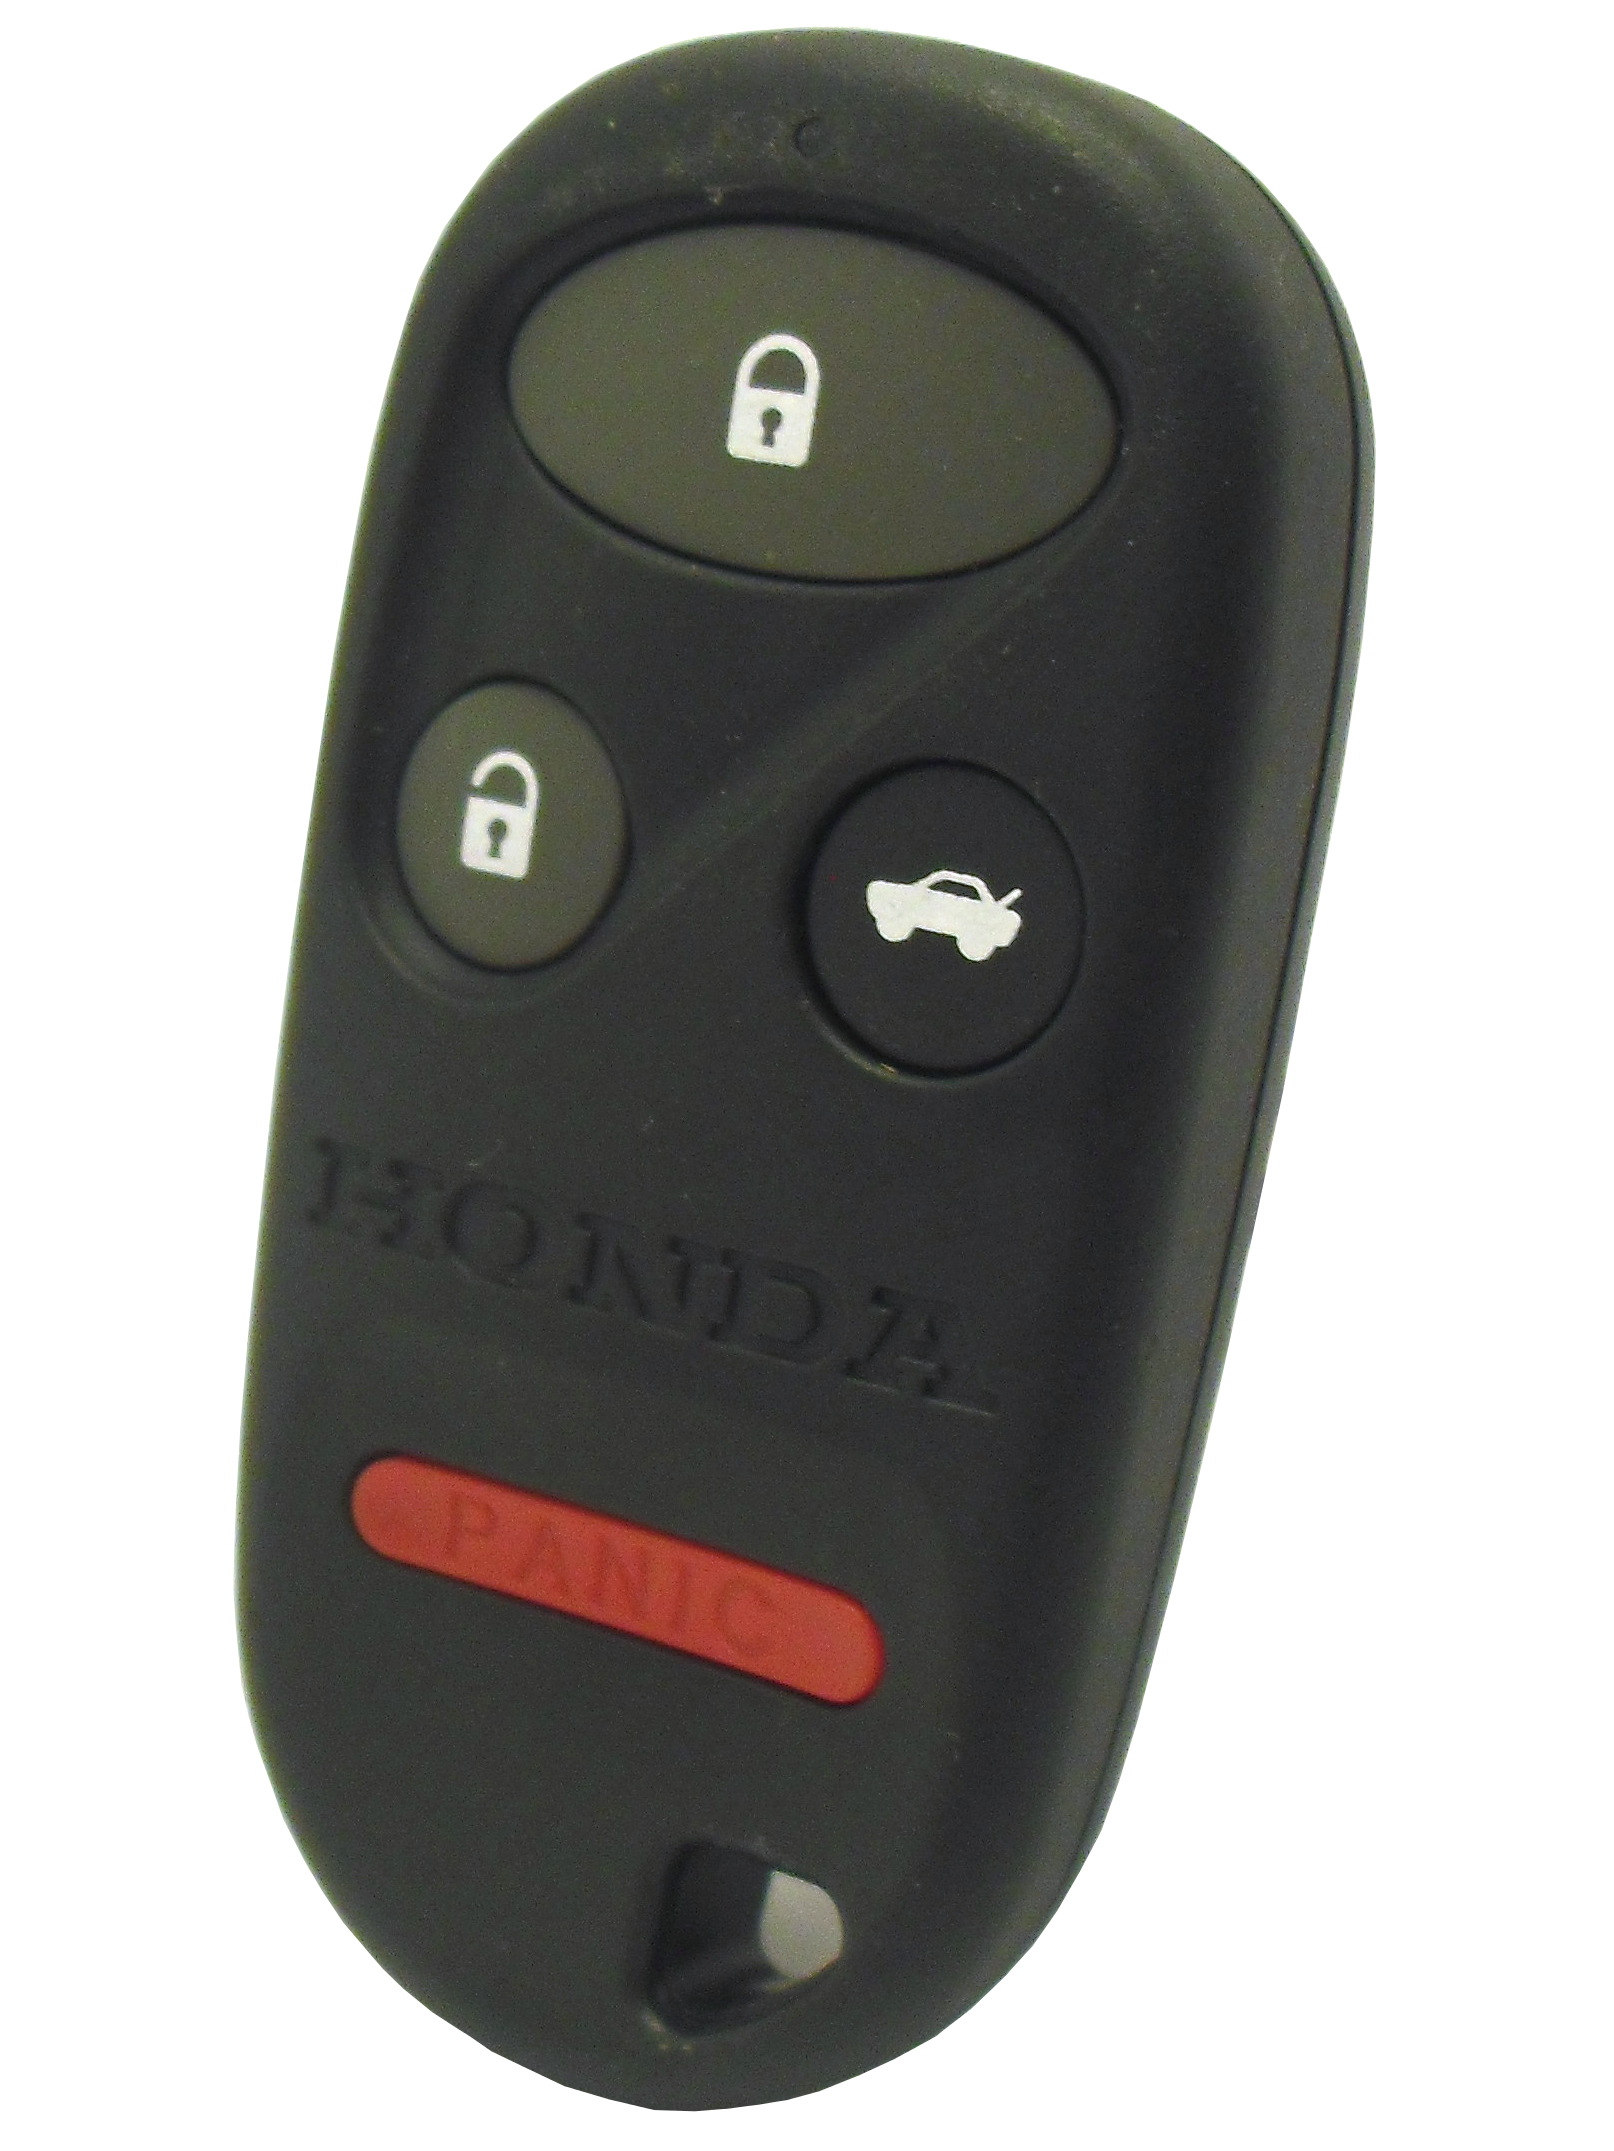 Honda Accord Keyless Entry Remote 4 Button For 1999 Honda Accord Car Keys Express